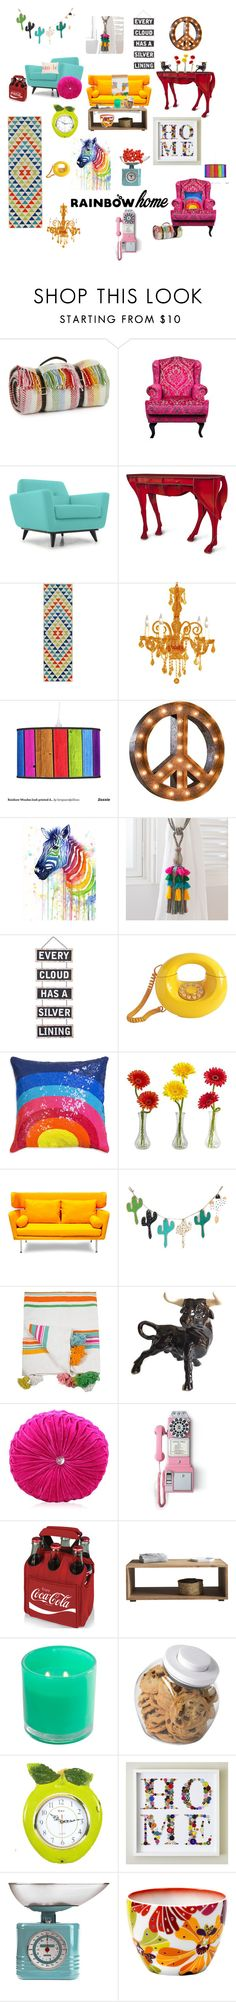 """More than a Feeling..."" by veronica22munoz on Polyvore featuring interior, interiors, interior design, home, home decor, interior decorating, Tweedmill, Joybird Furniture, ibride and Momeni"